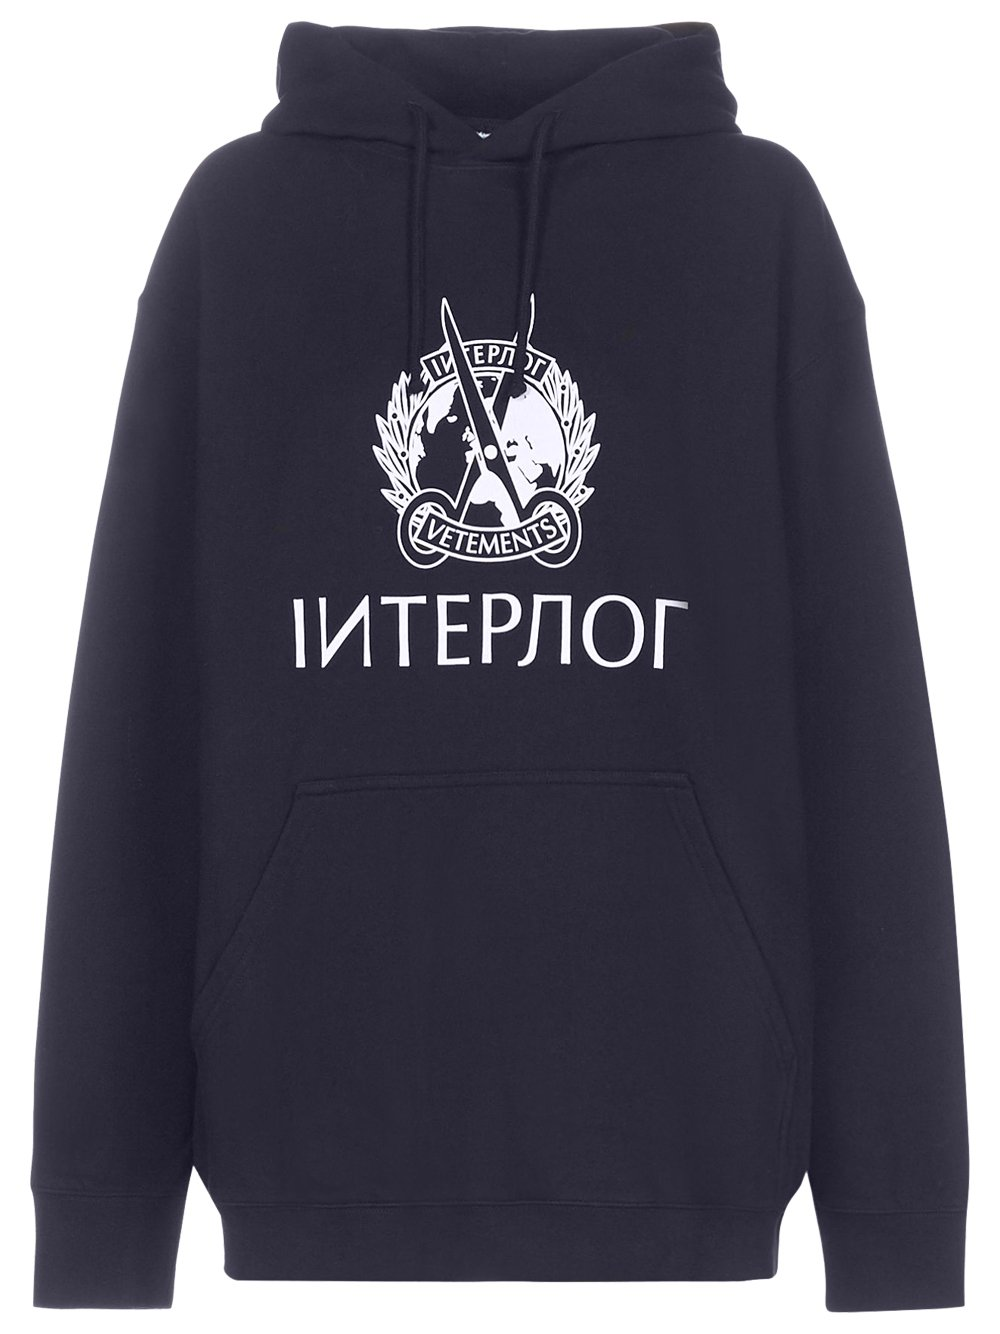 VETEMENTS interpol hoodie navy